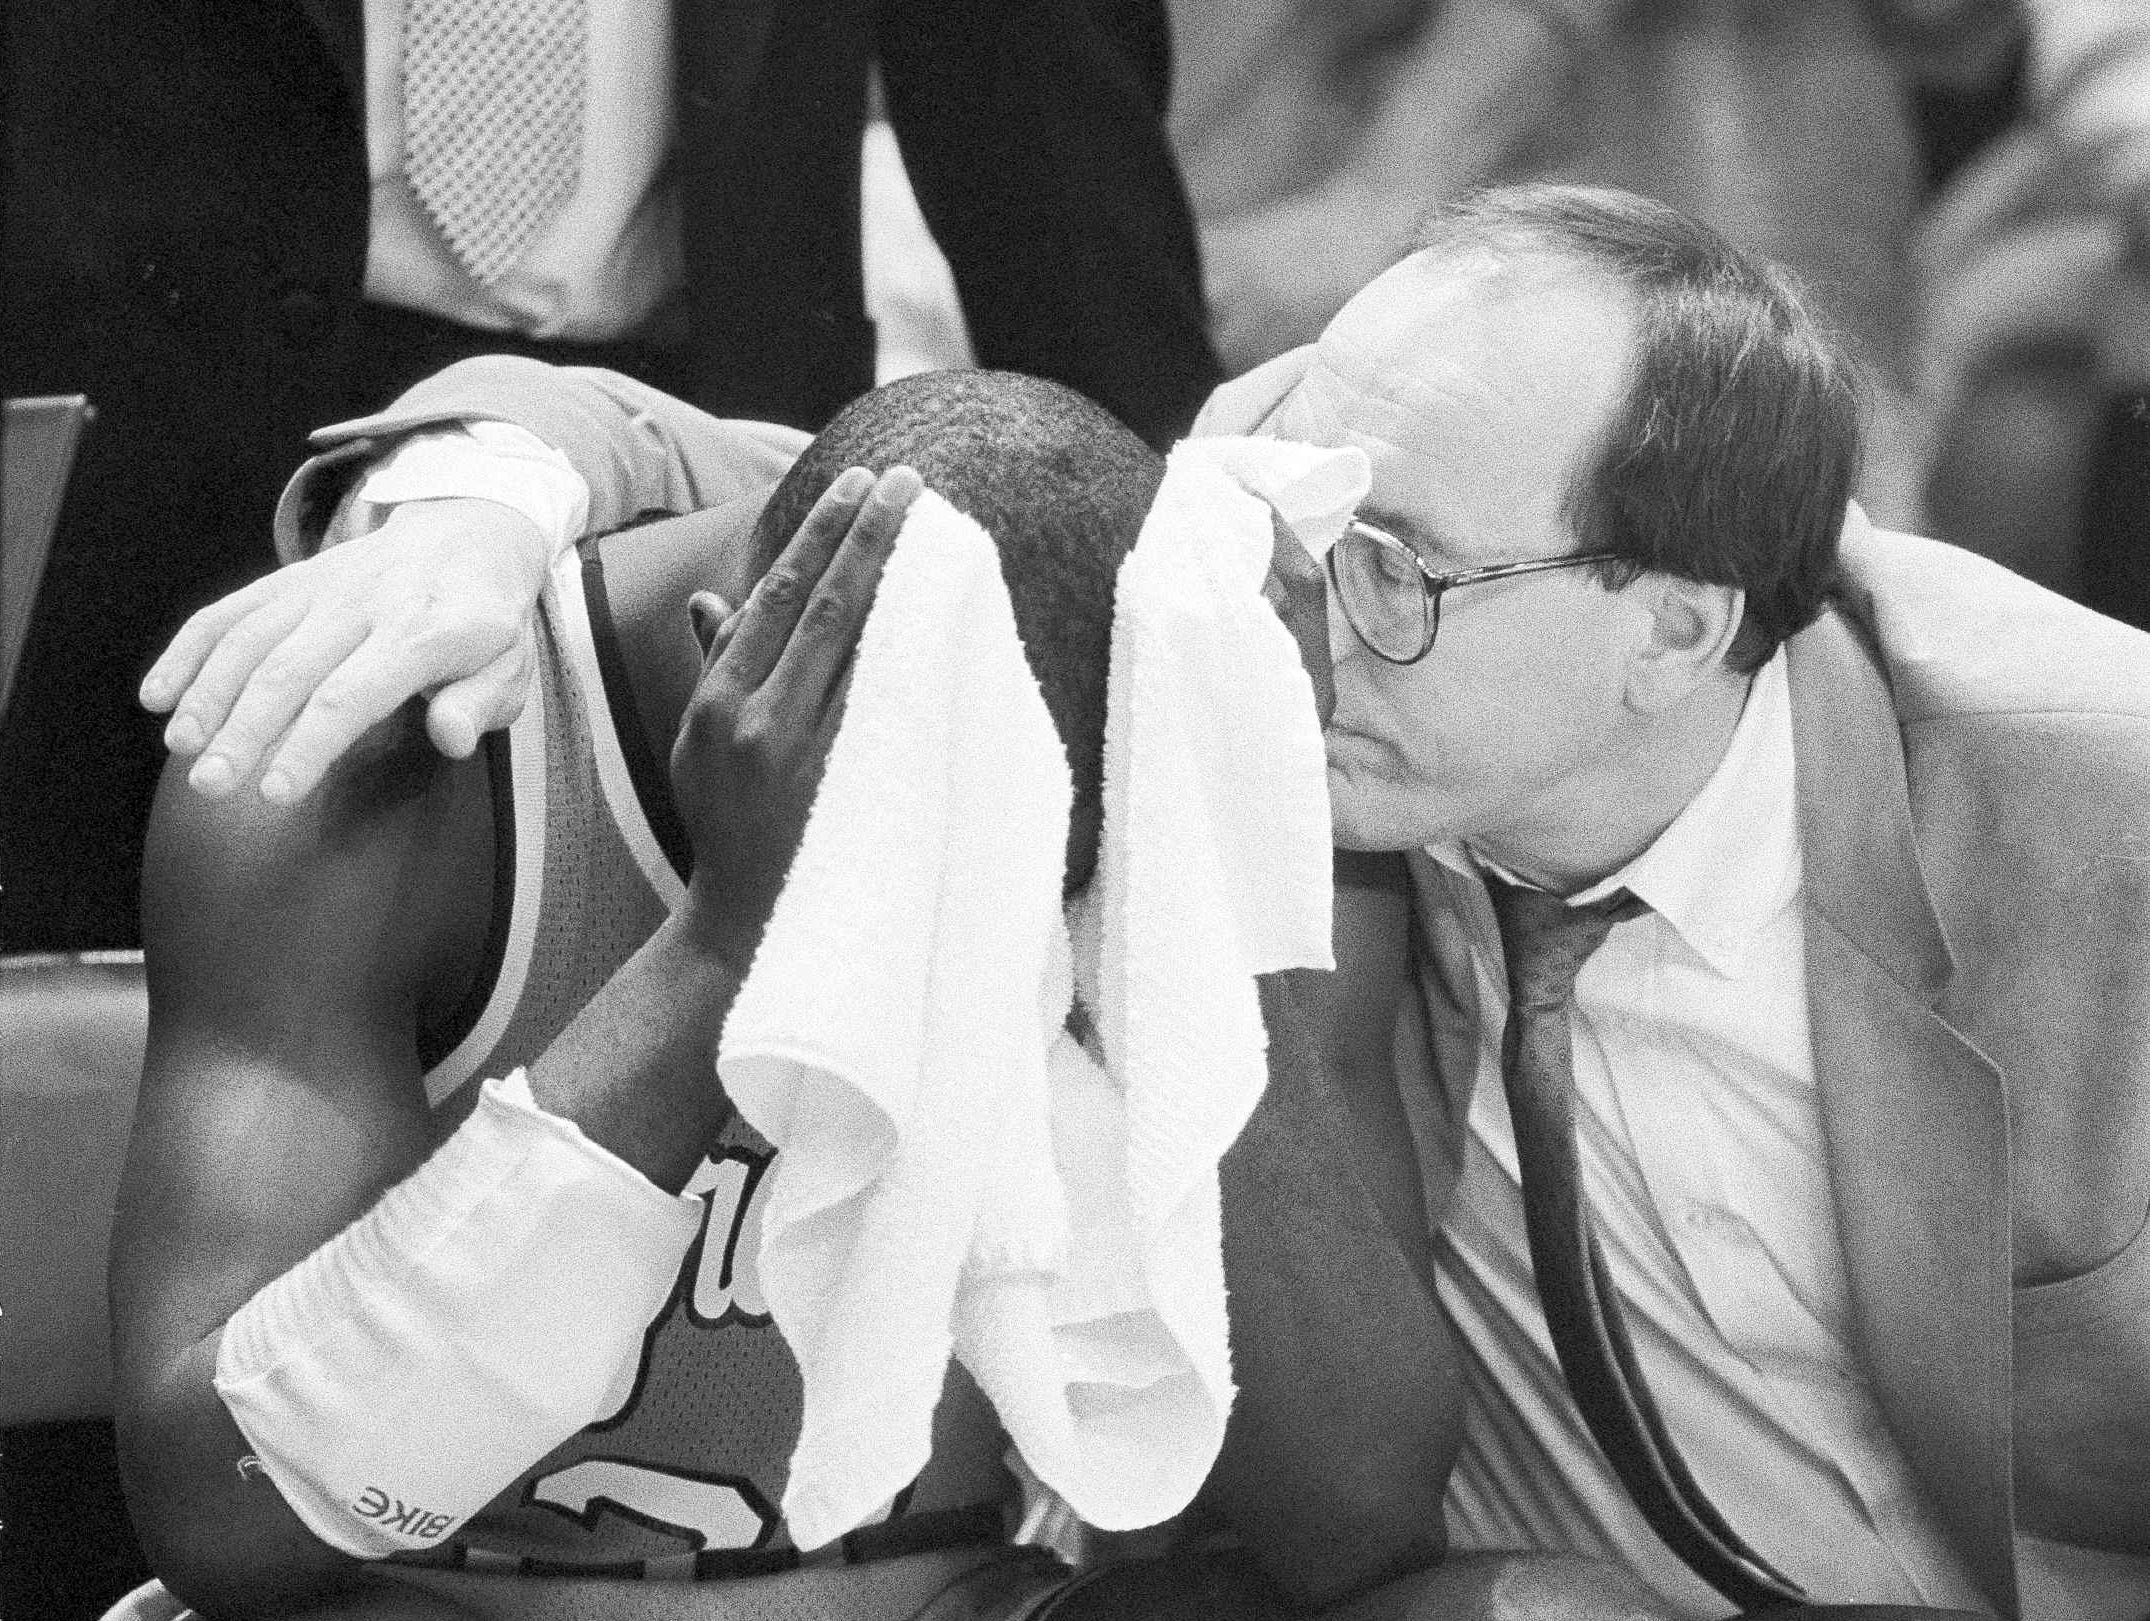 1986: Dwayne Washington is consoled by Syracuse coach Jim Boeheim, right, after his shot at the buzzer was blocked by St. John's Walter Berry to give No. 5 St. Joh's a 70-69 win in New York for the Big East championship and an automatic berth in the NCAA tournament, March 9, 1986. Washington, who led all scorers iwth 20 points and 14 assists, was the tourney's most valuable player. (AP Photo/Ray Stubblebine)